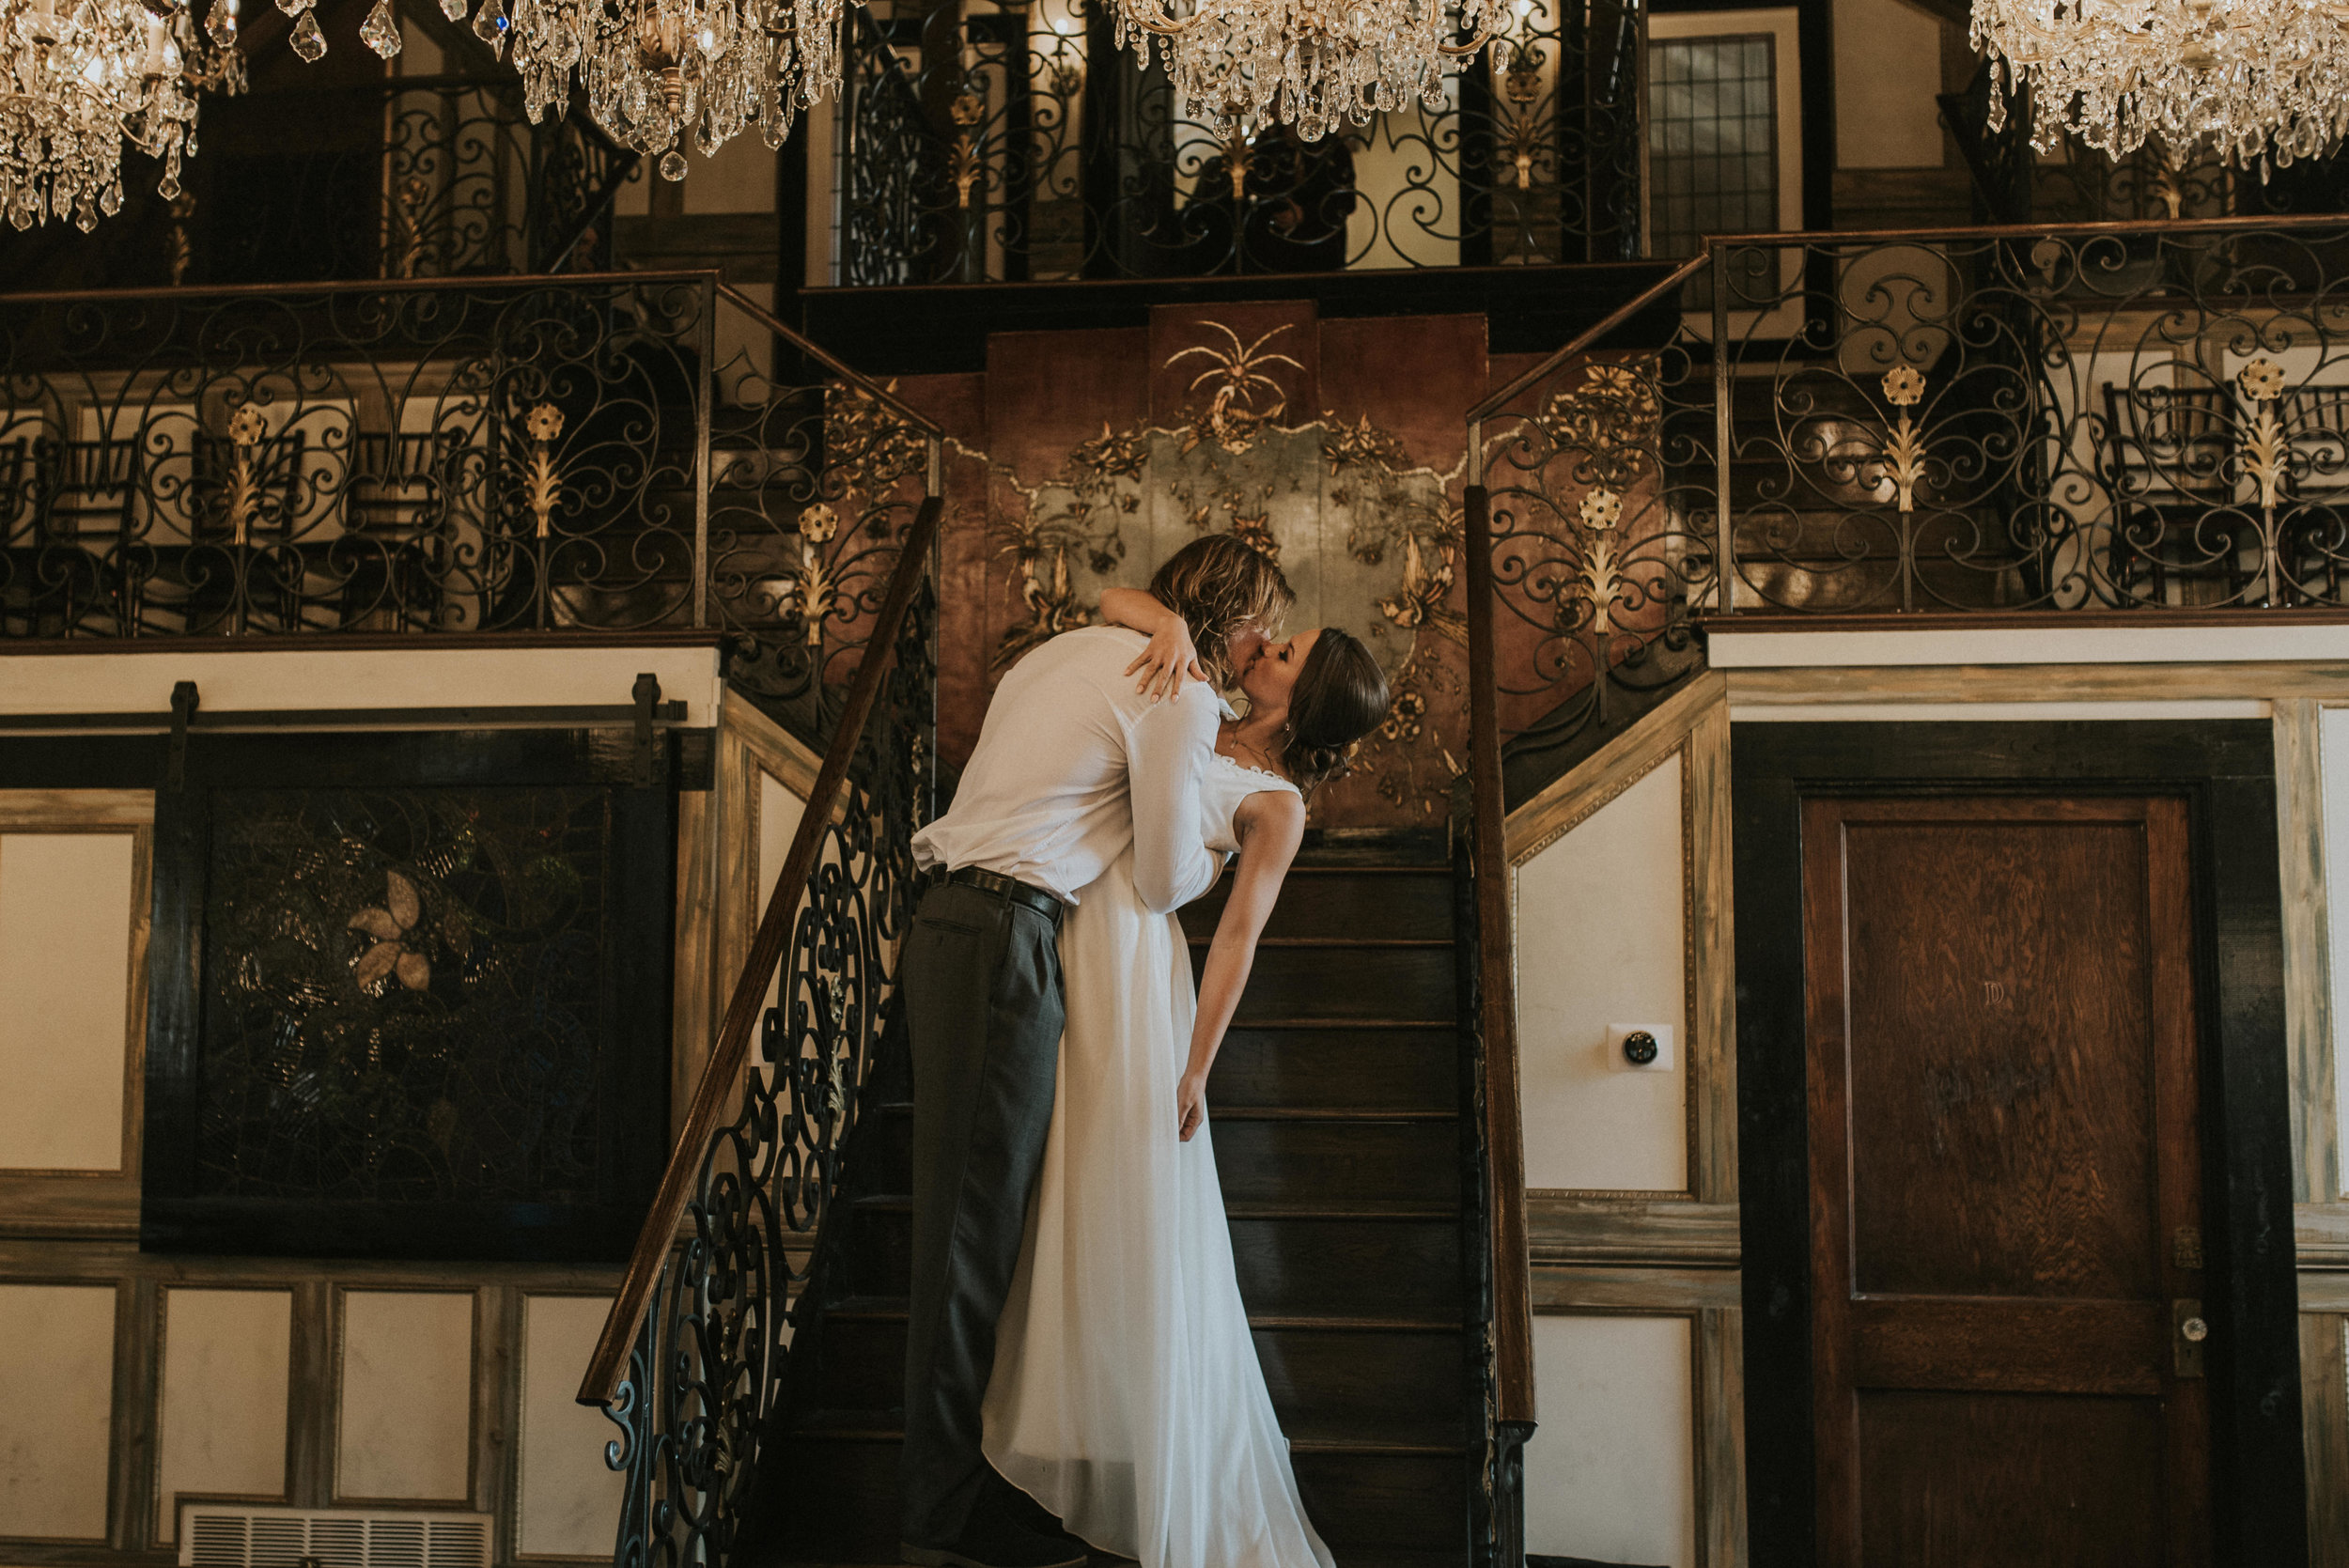 Chandelier Barn first kiss at Lionsgate Event Center in Lafayette, Colorado